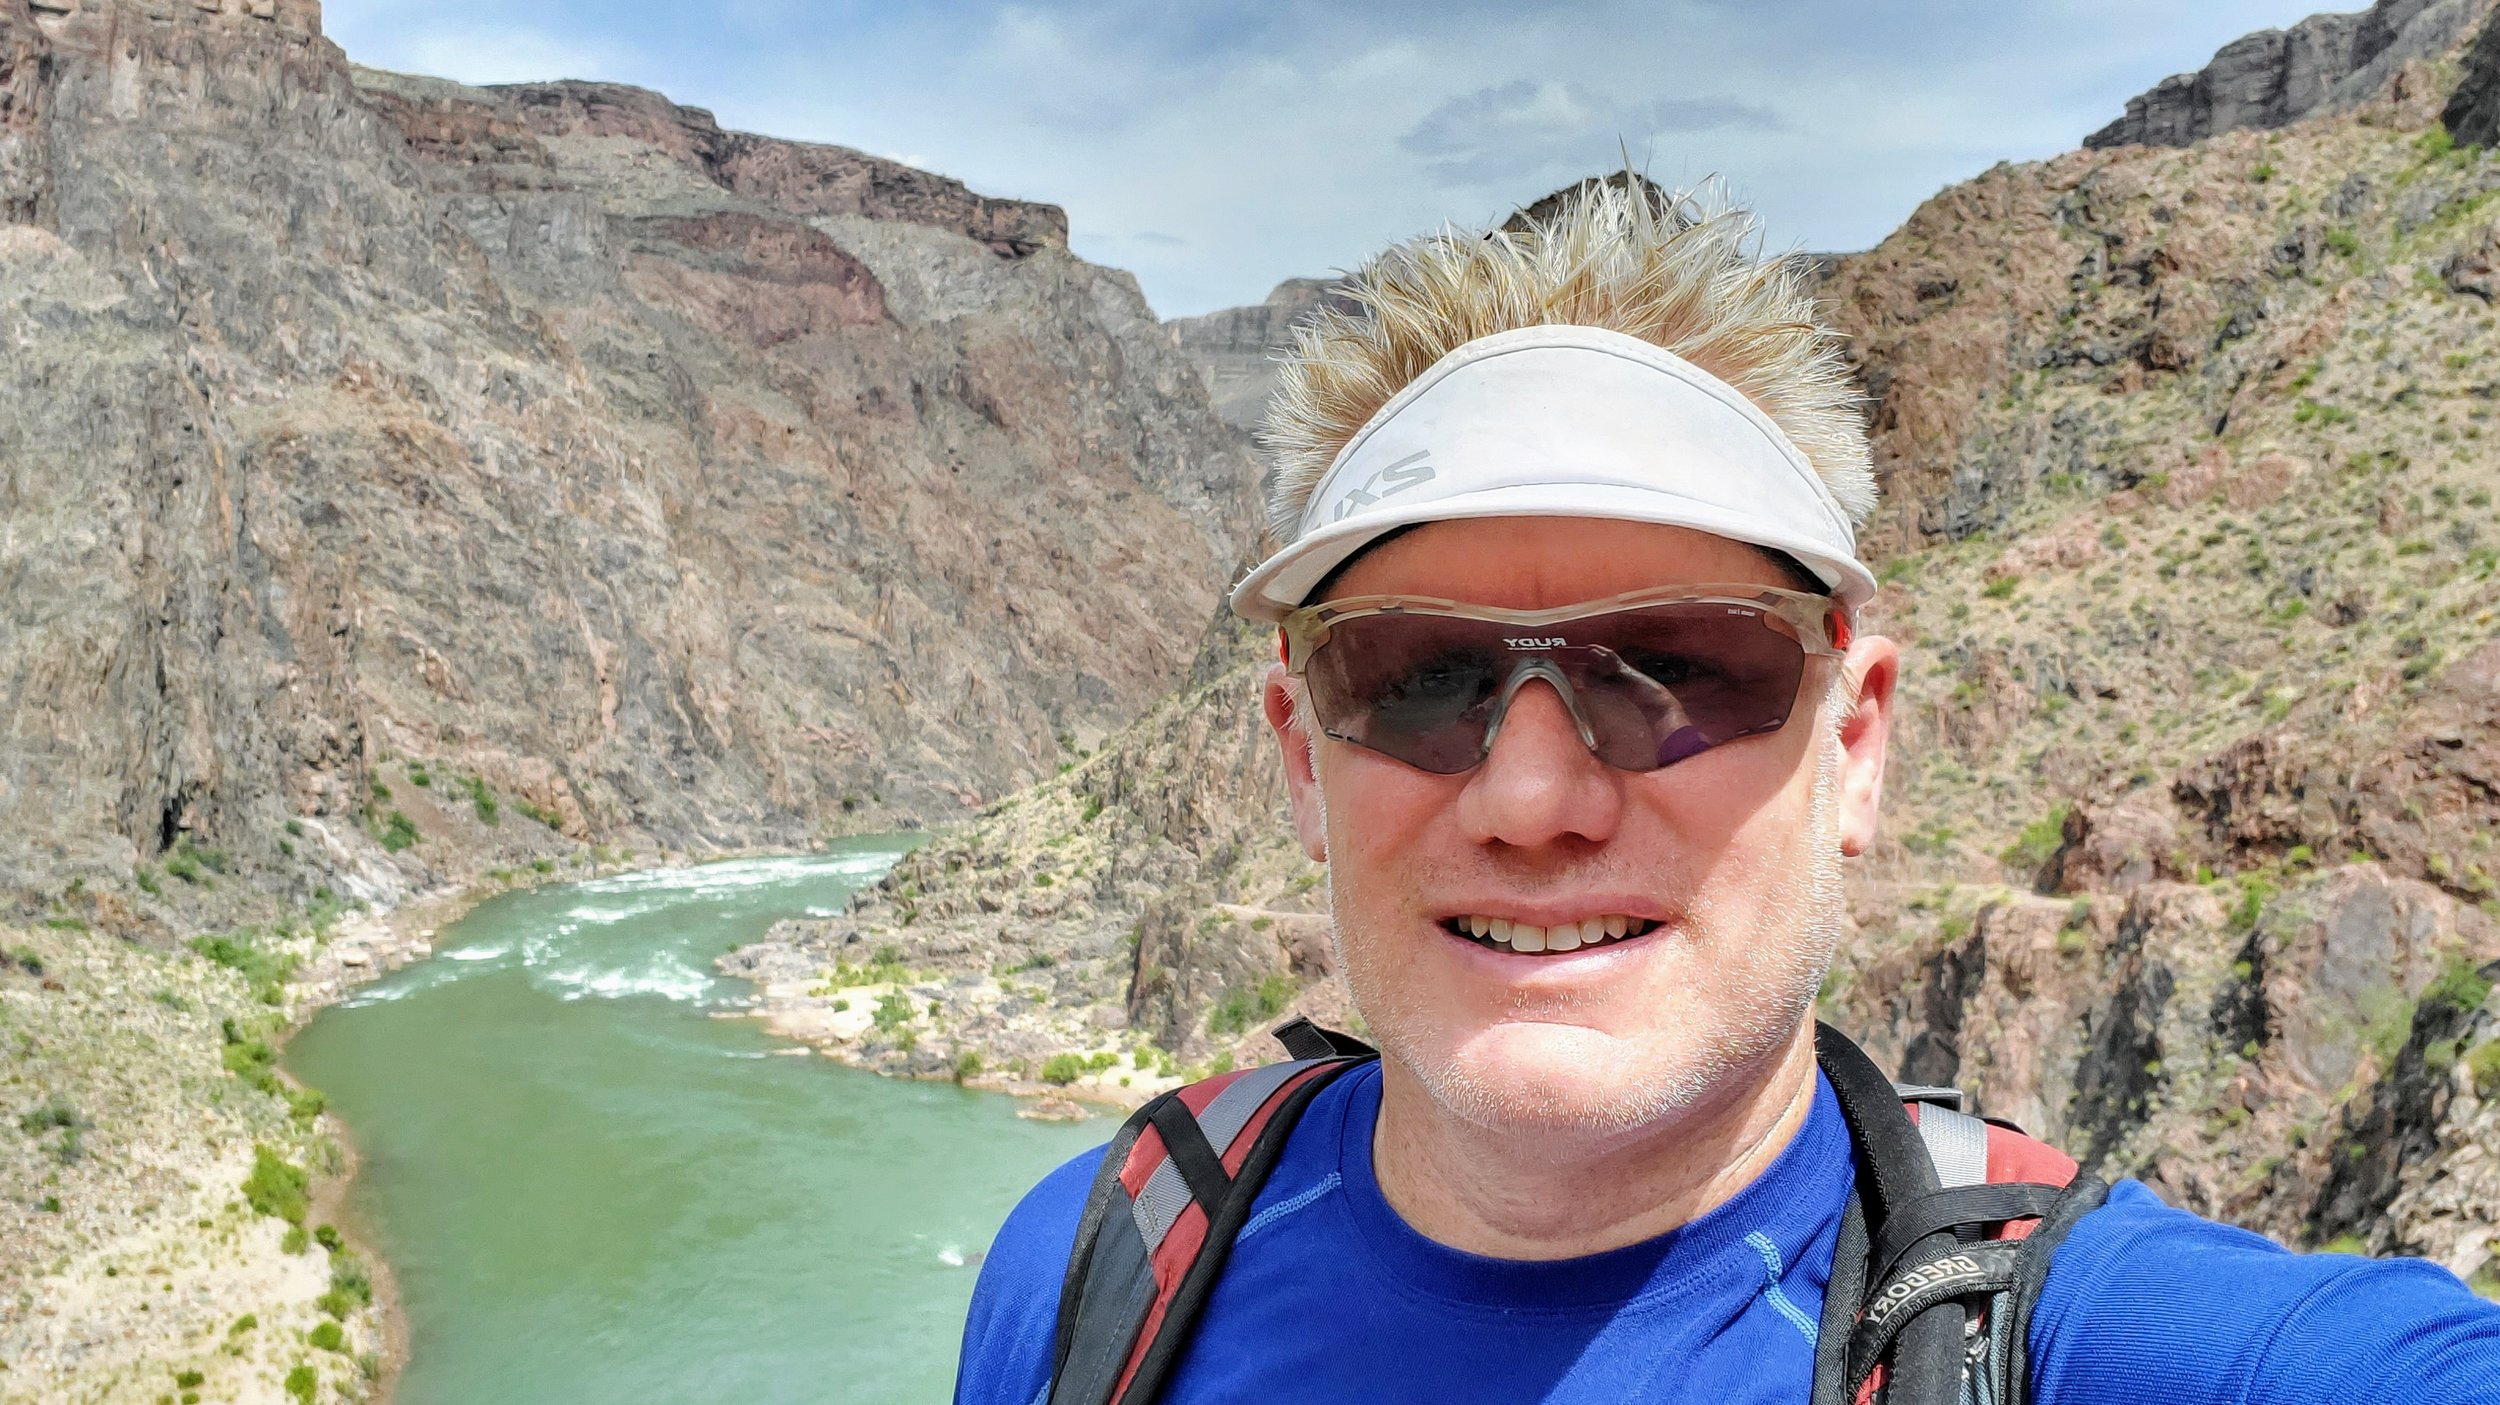 Christian, crossing the Colorado River at Grand Canyon National Park